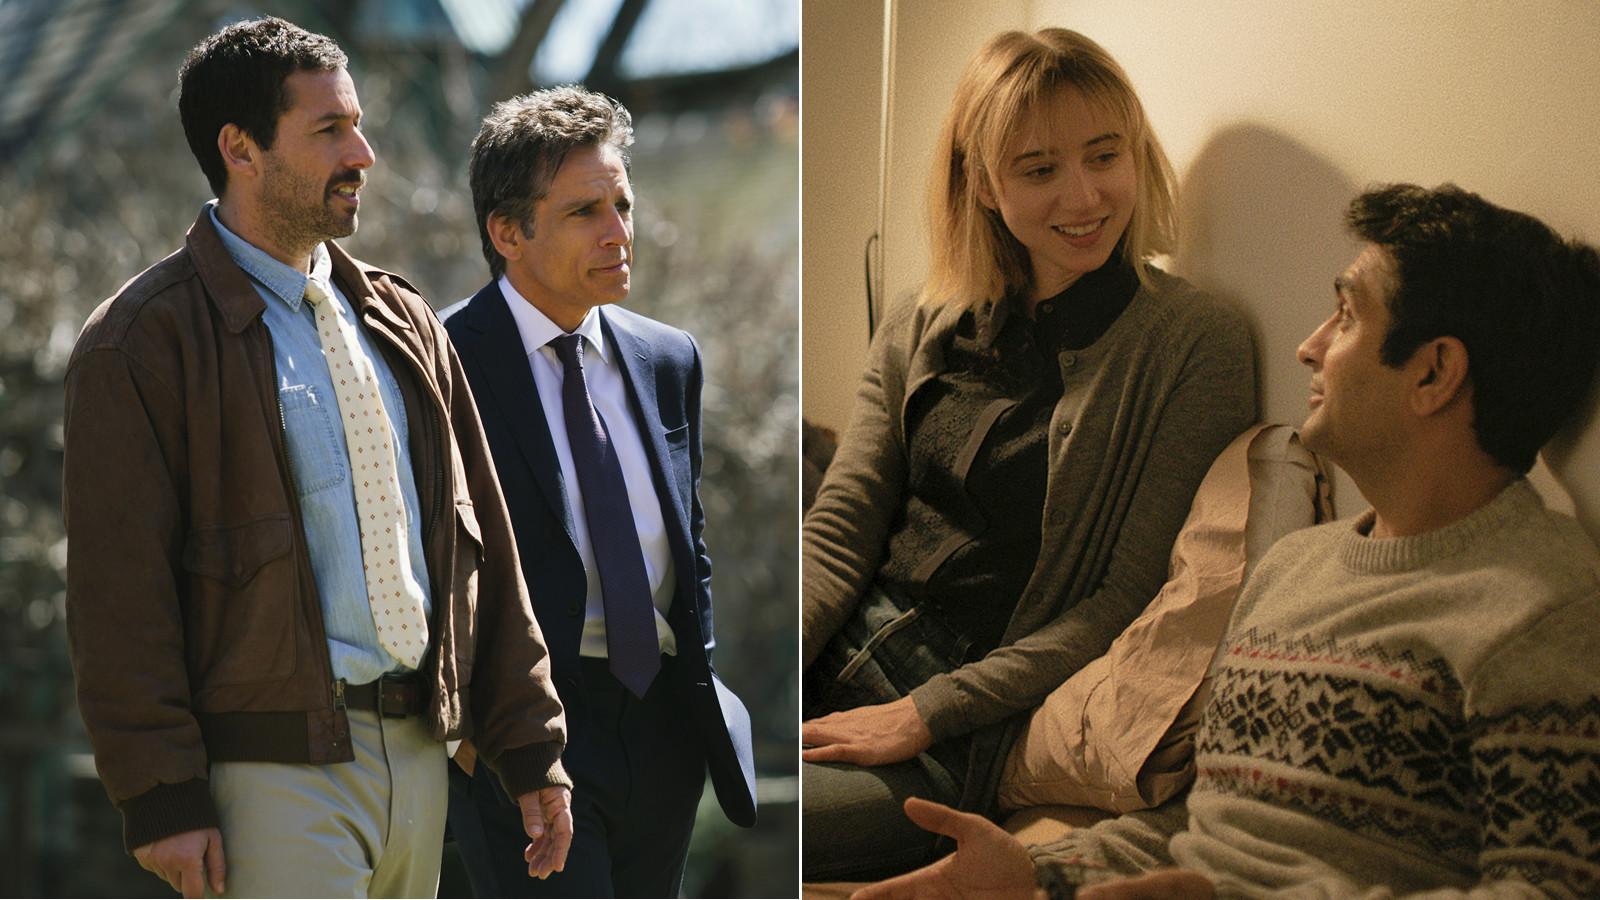 'The Meyerowitz Stories (New and Selected)' and 'The Big Sick'